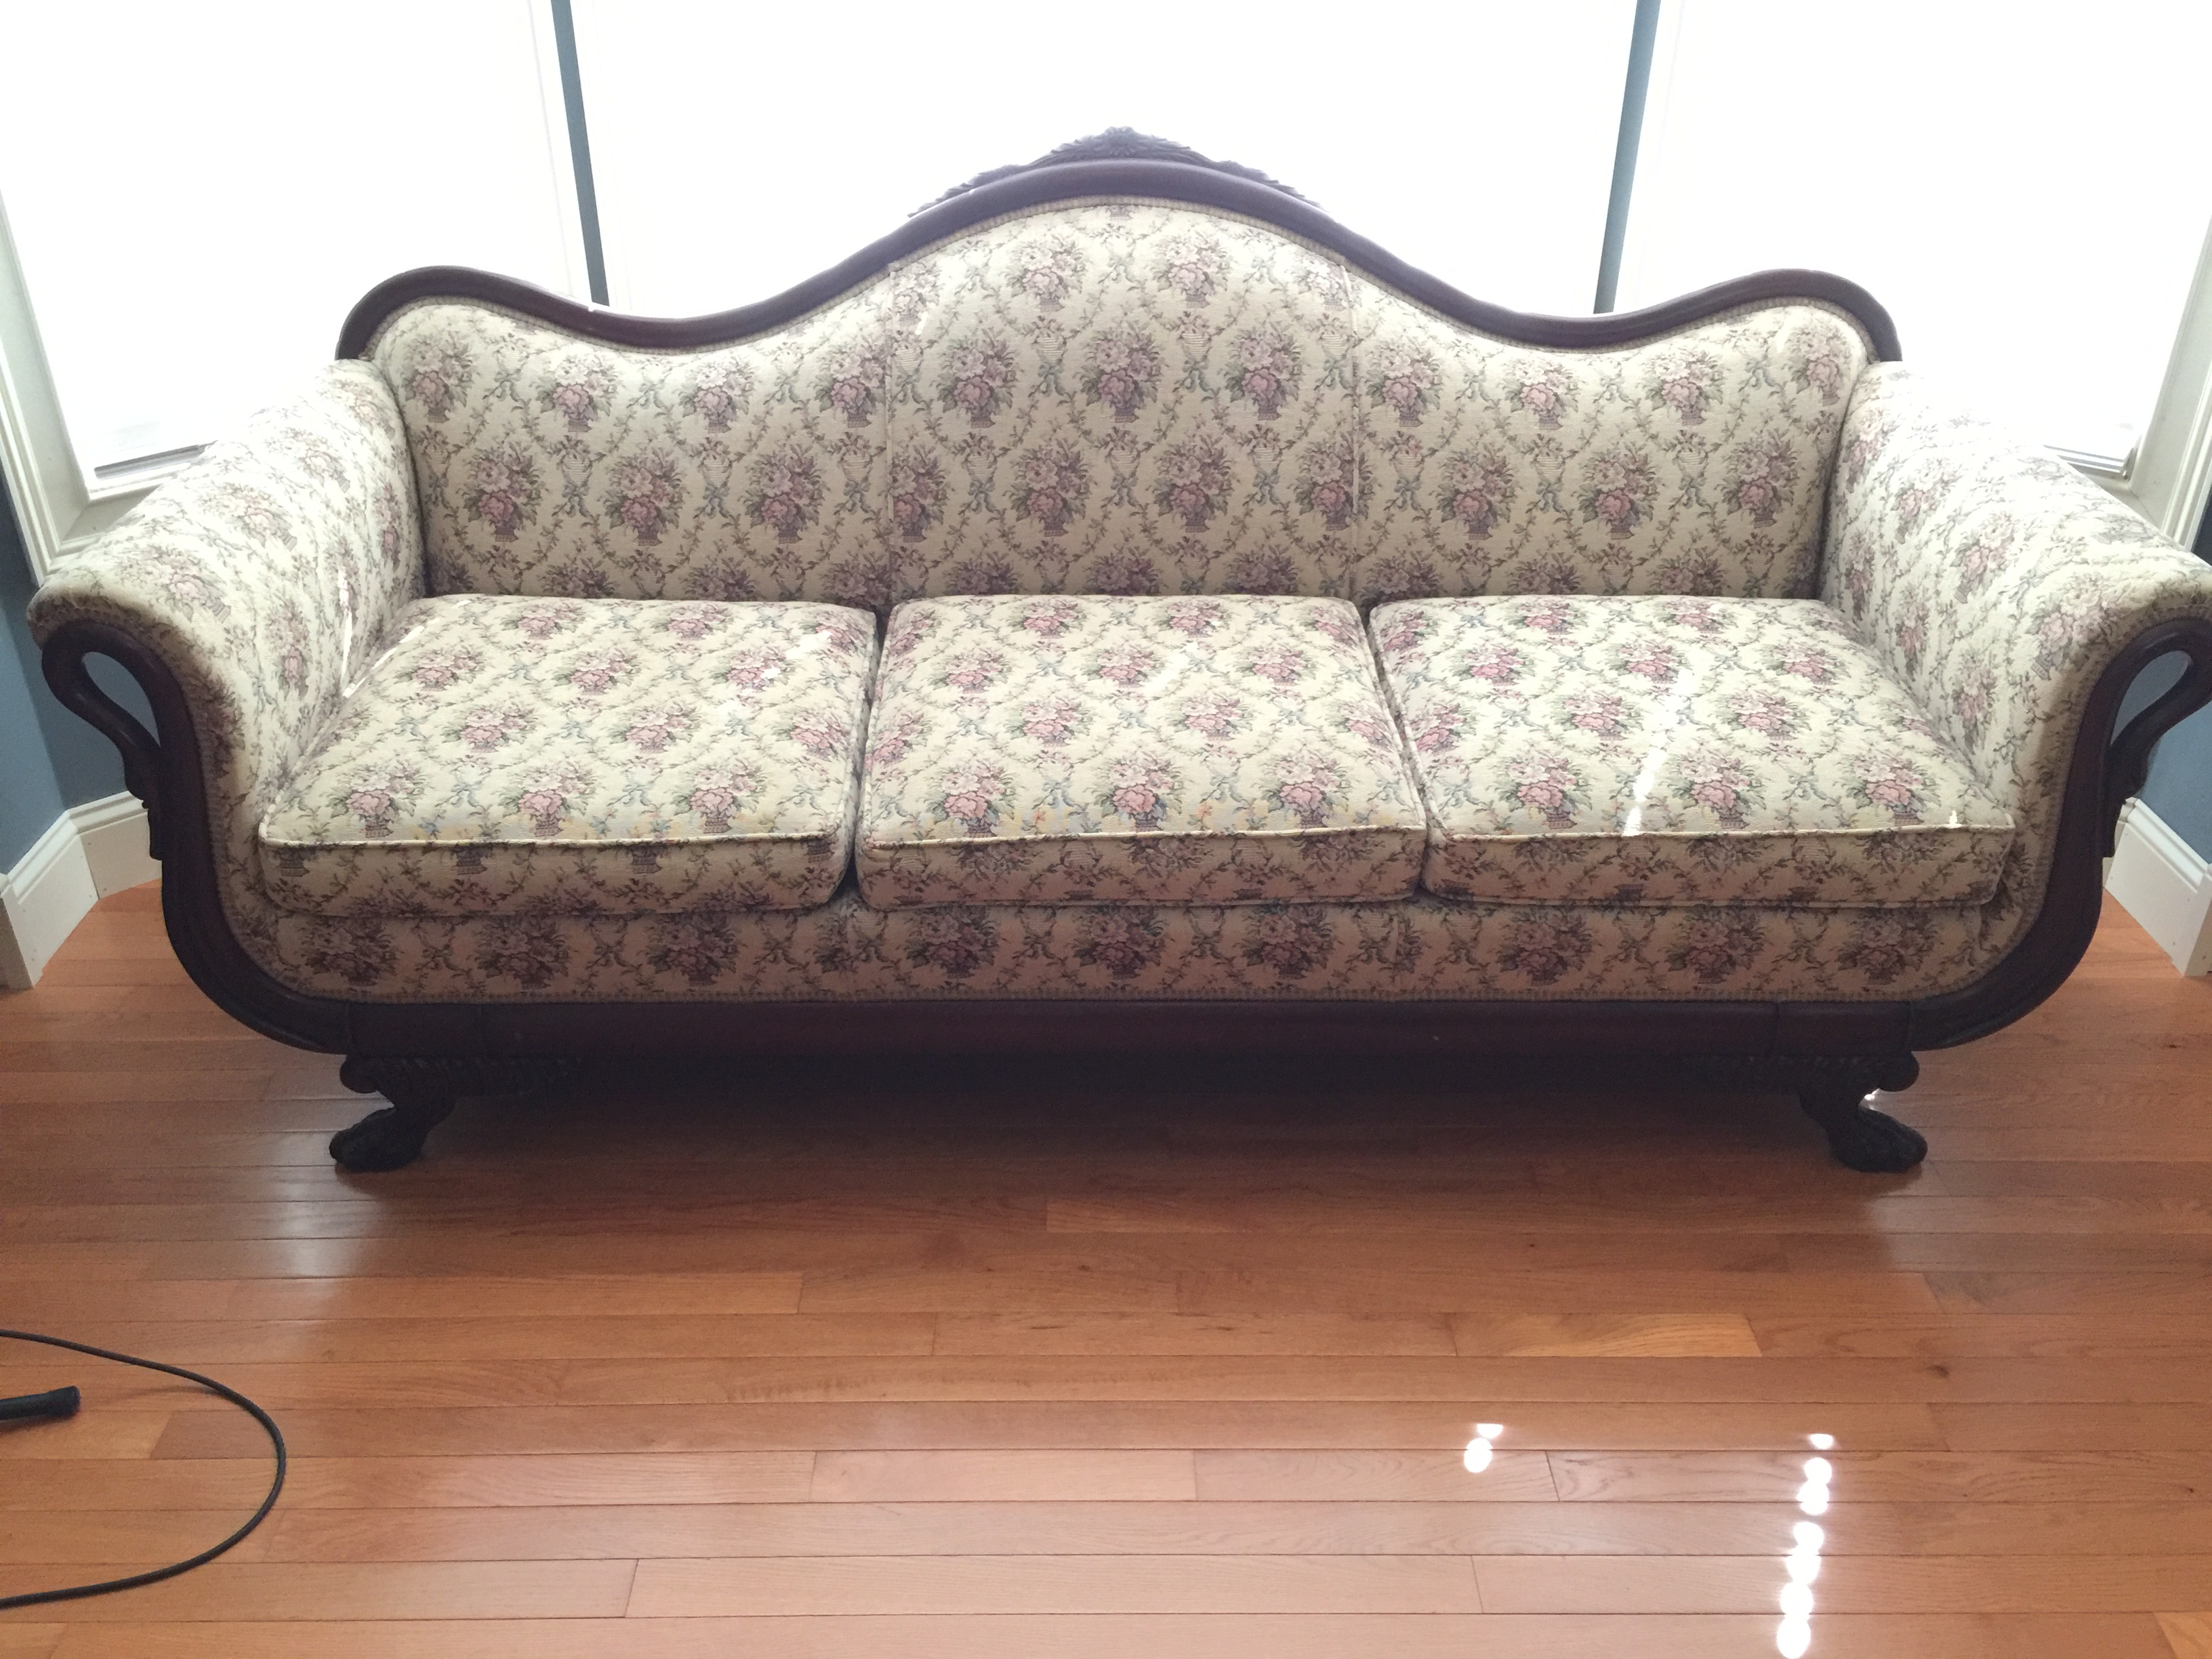 my uncle left my mom a duncan phyfe sofa how can we tell if it s an rh justanswer com